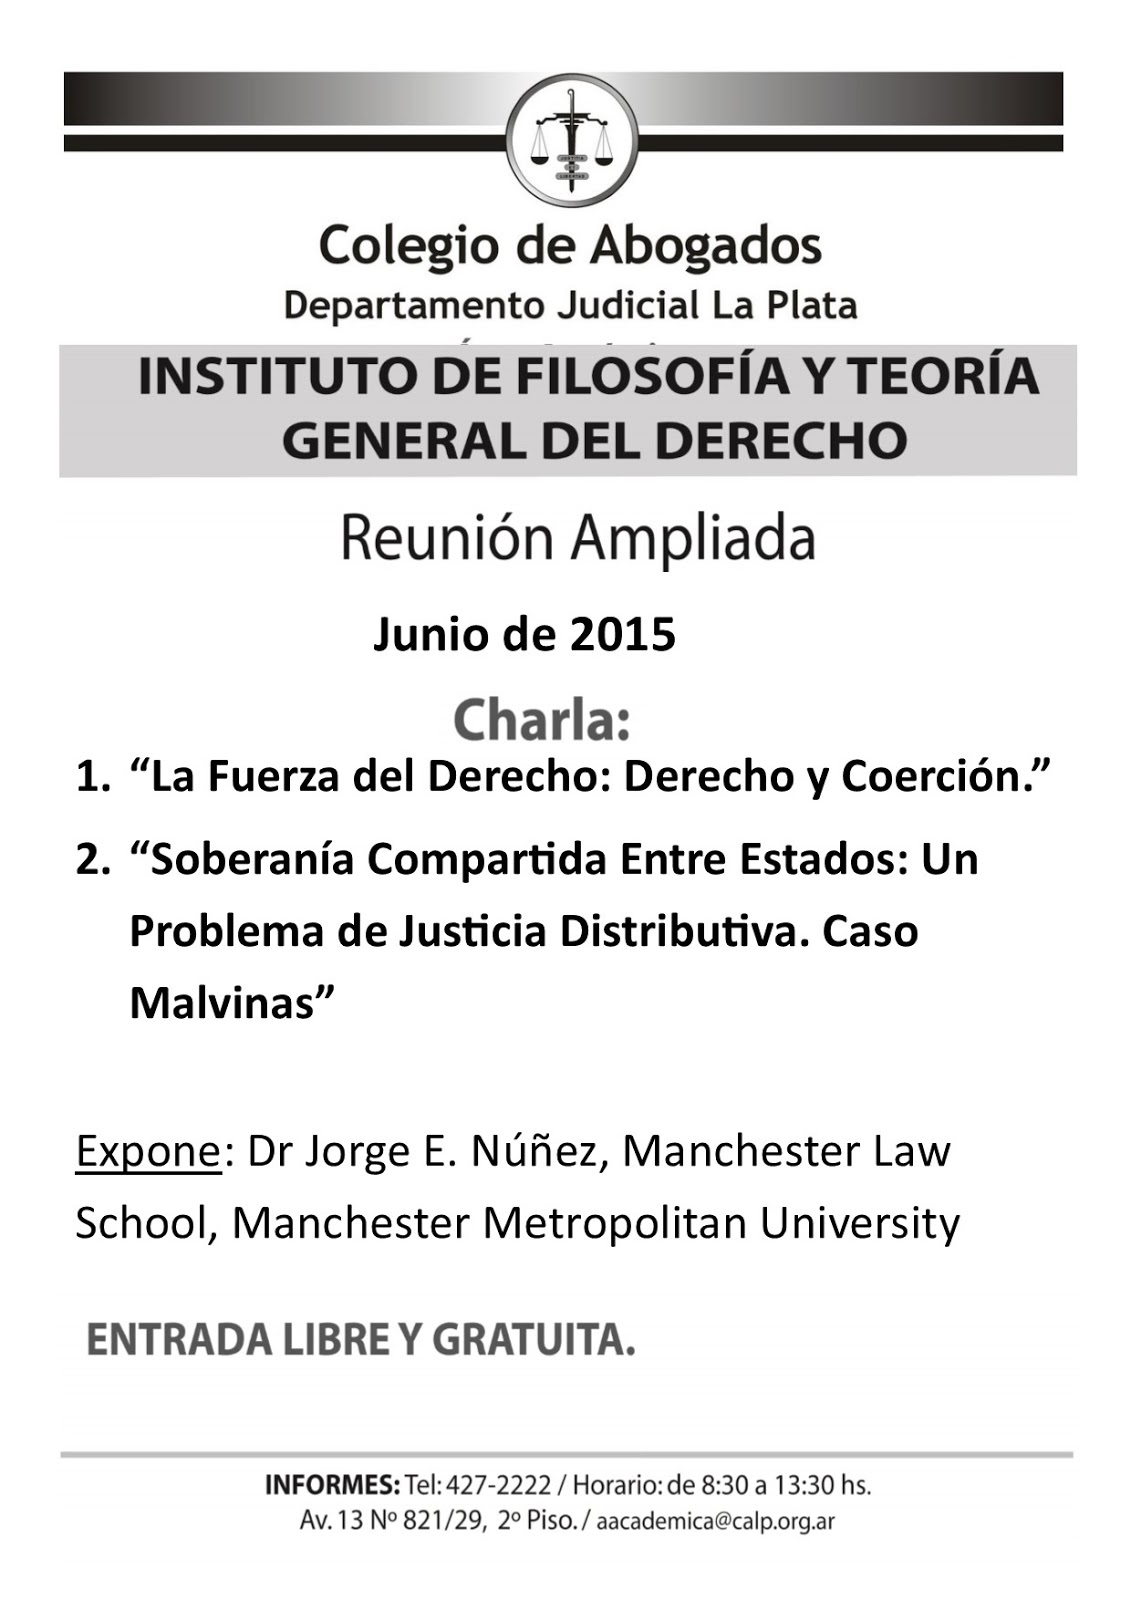 Dr Jorge's blog: The Force of Law: Law and Coercion